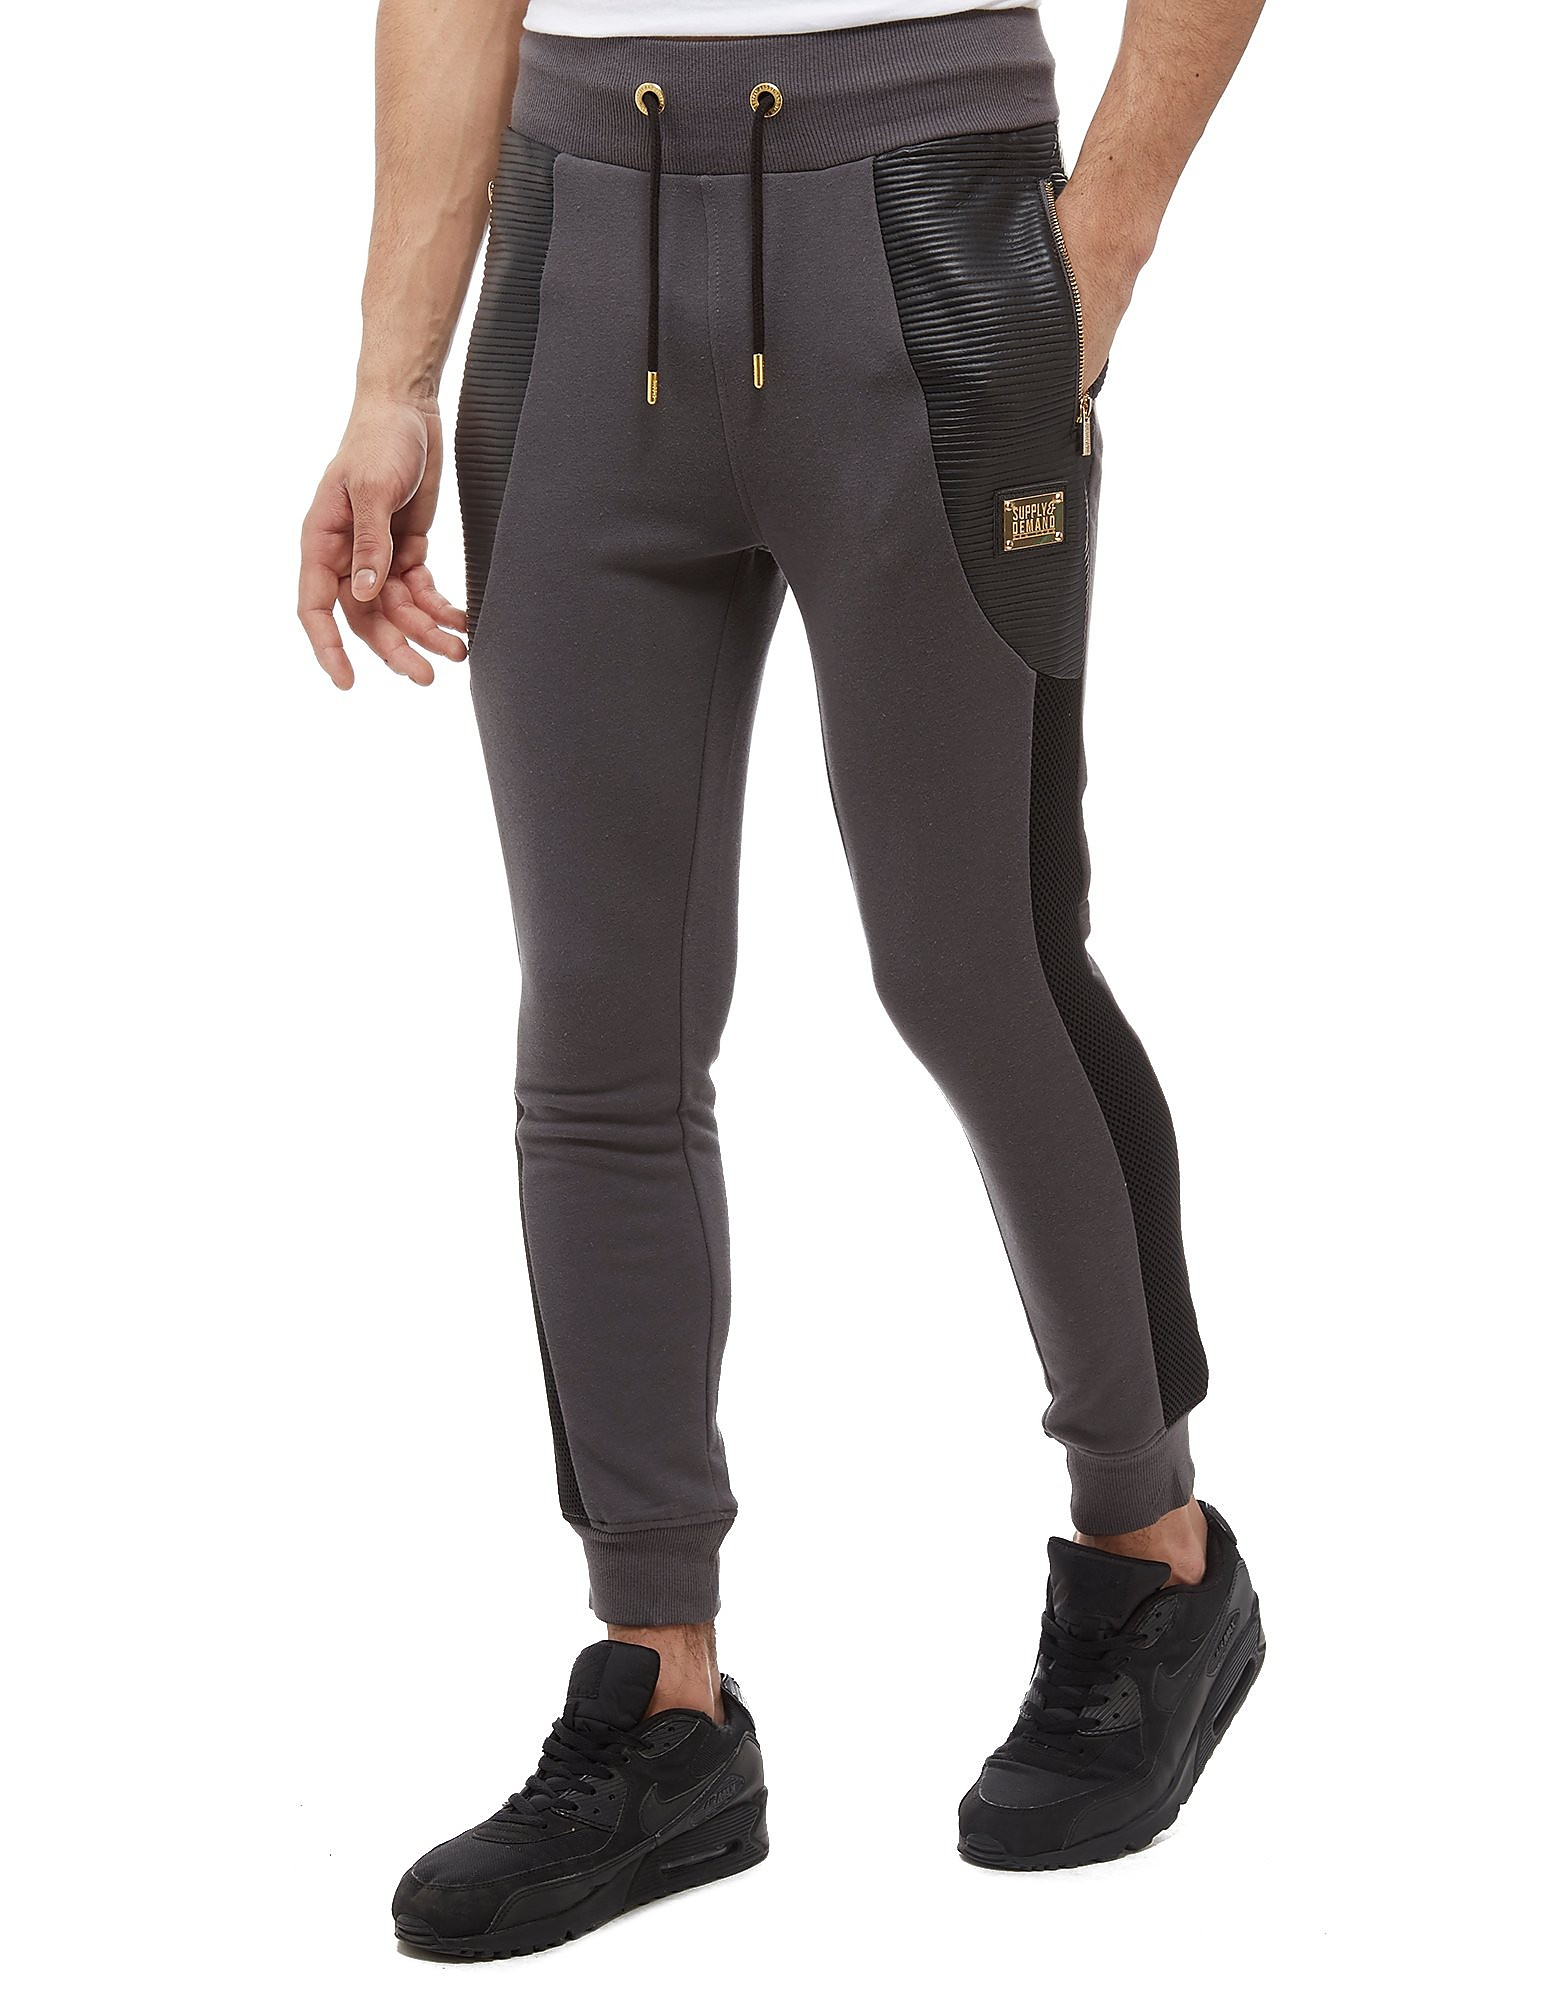 Supply & Demand Lorenzo Brushback Fleece Joggers - Only at JD, Grey